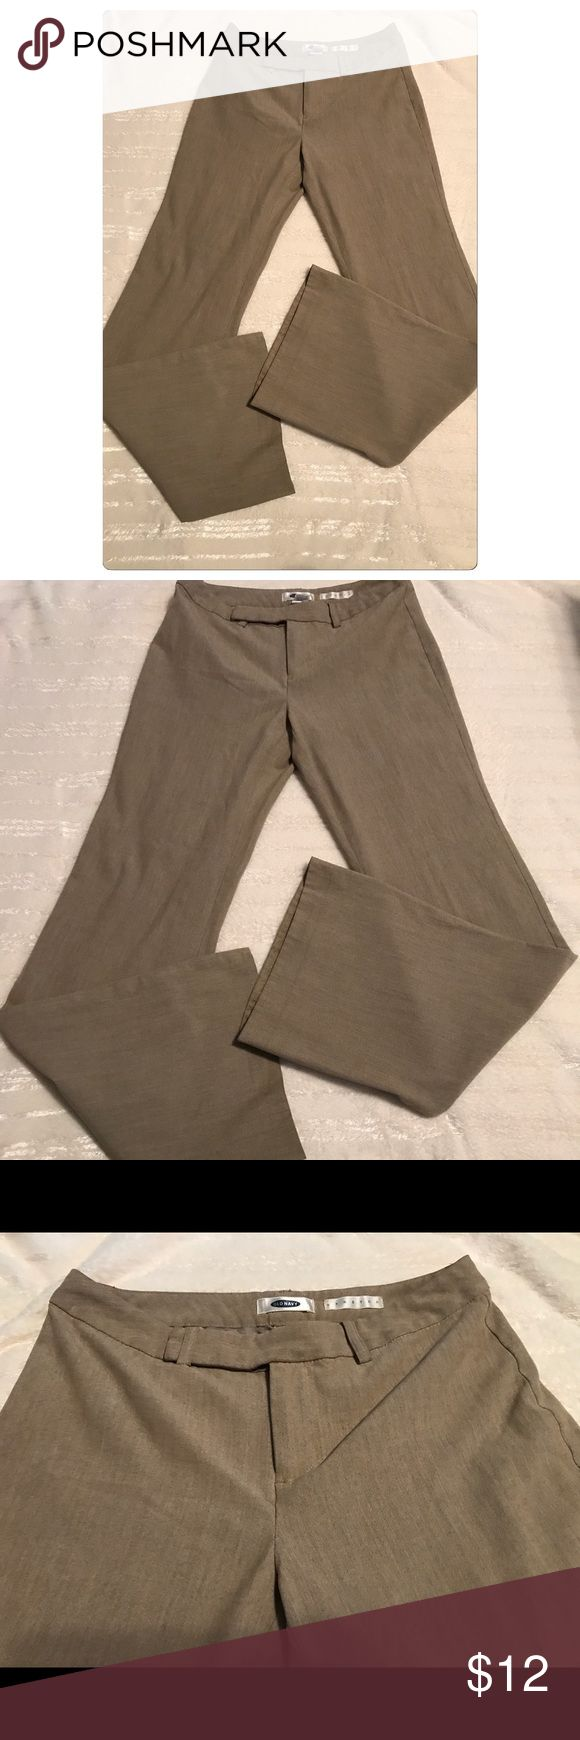 """Old Navy Wide Leg Pants Old Navy Wide Leg Stretch Dress Pants In Great Condition. Size 1. 49% Rayon, 48% Polyester, 3% Lycra Spandex. Inseam 31"""", Rise 8"""". Great for the office or going out! Super comfortable. Smoke free and pet free home. Old Navy Pants Wide Leg"""